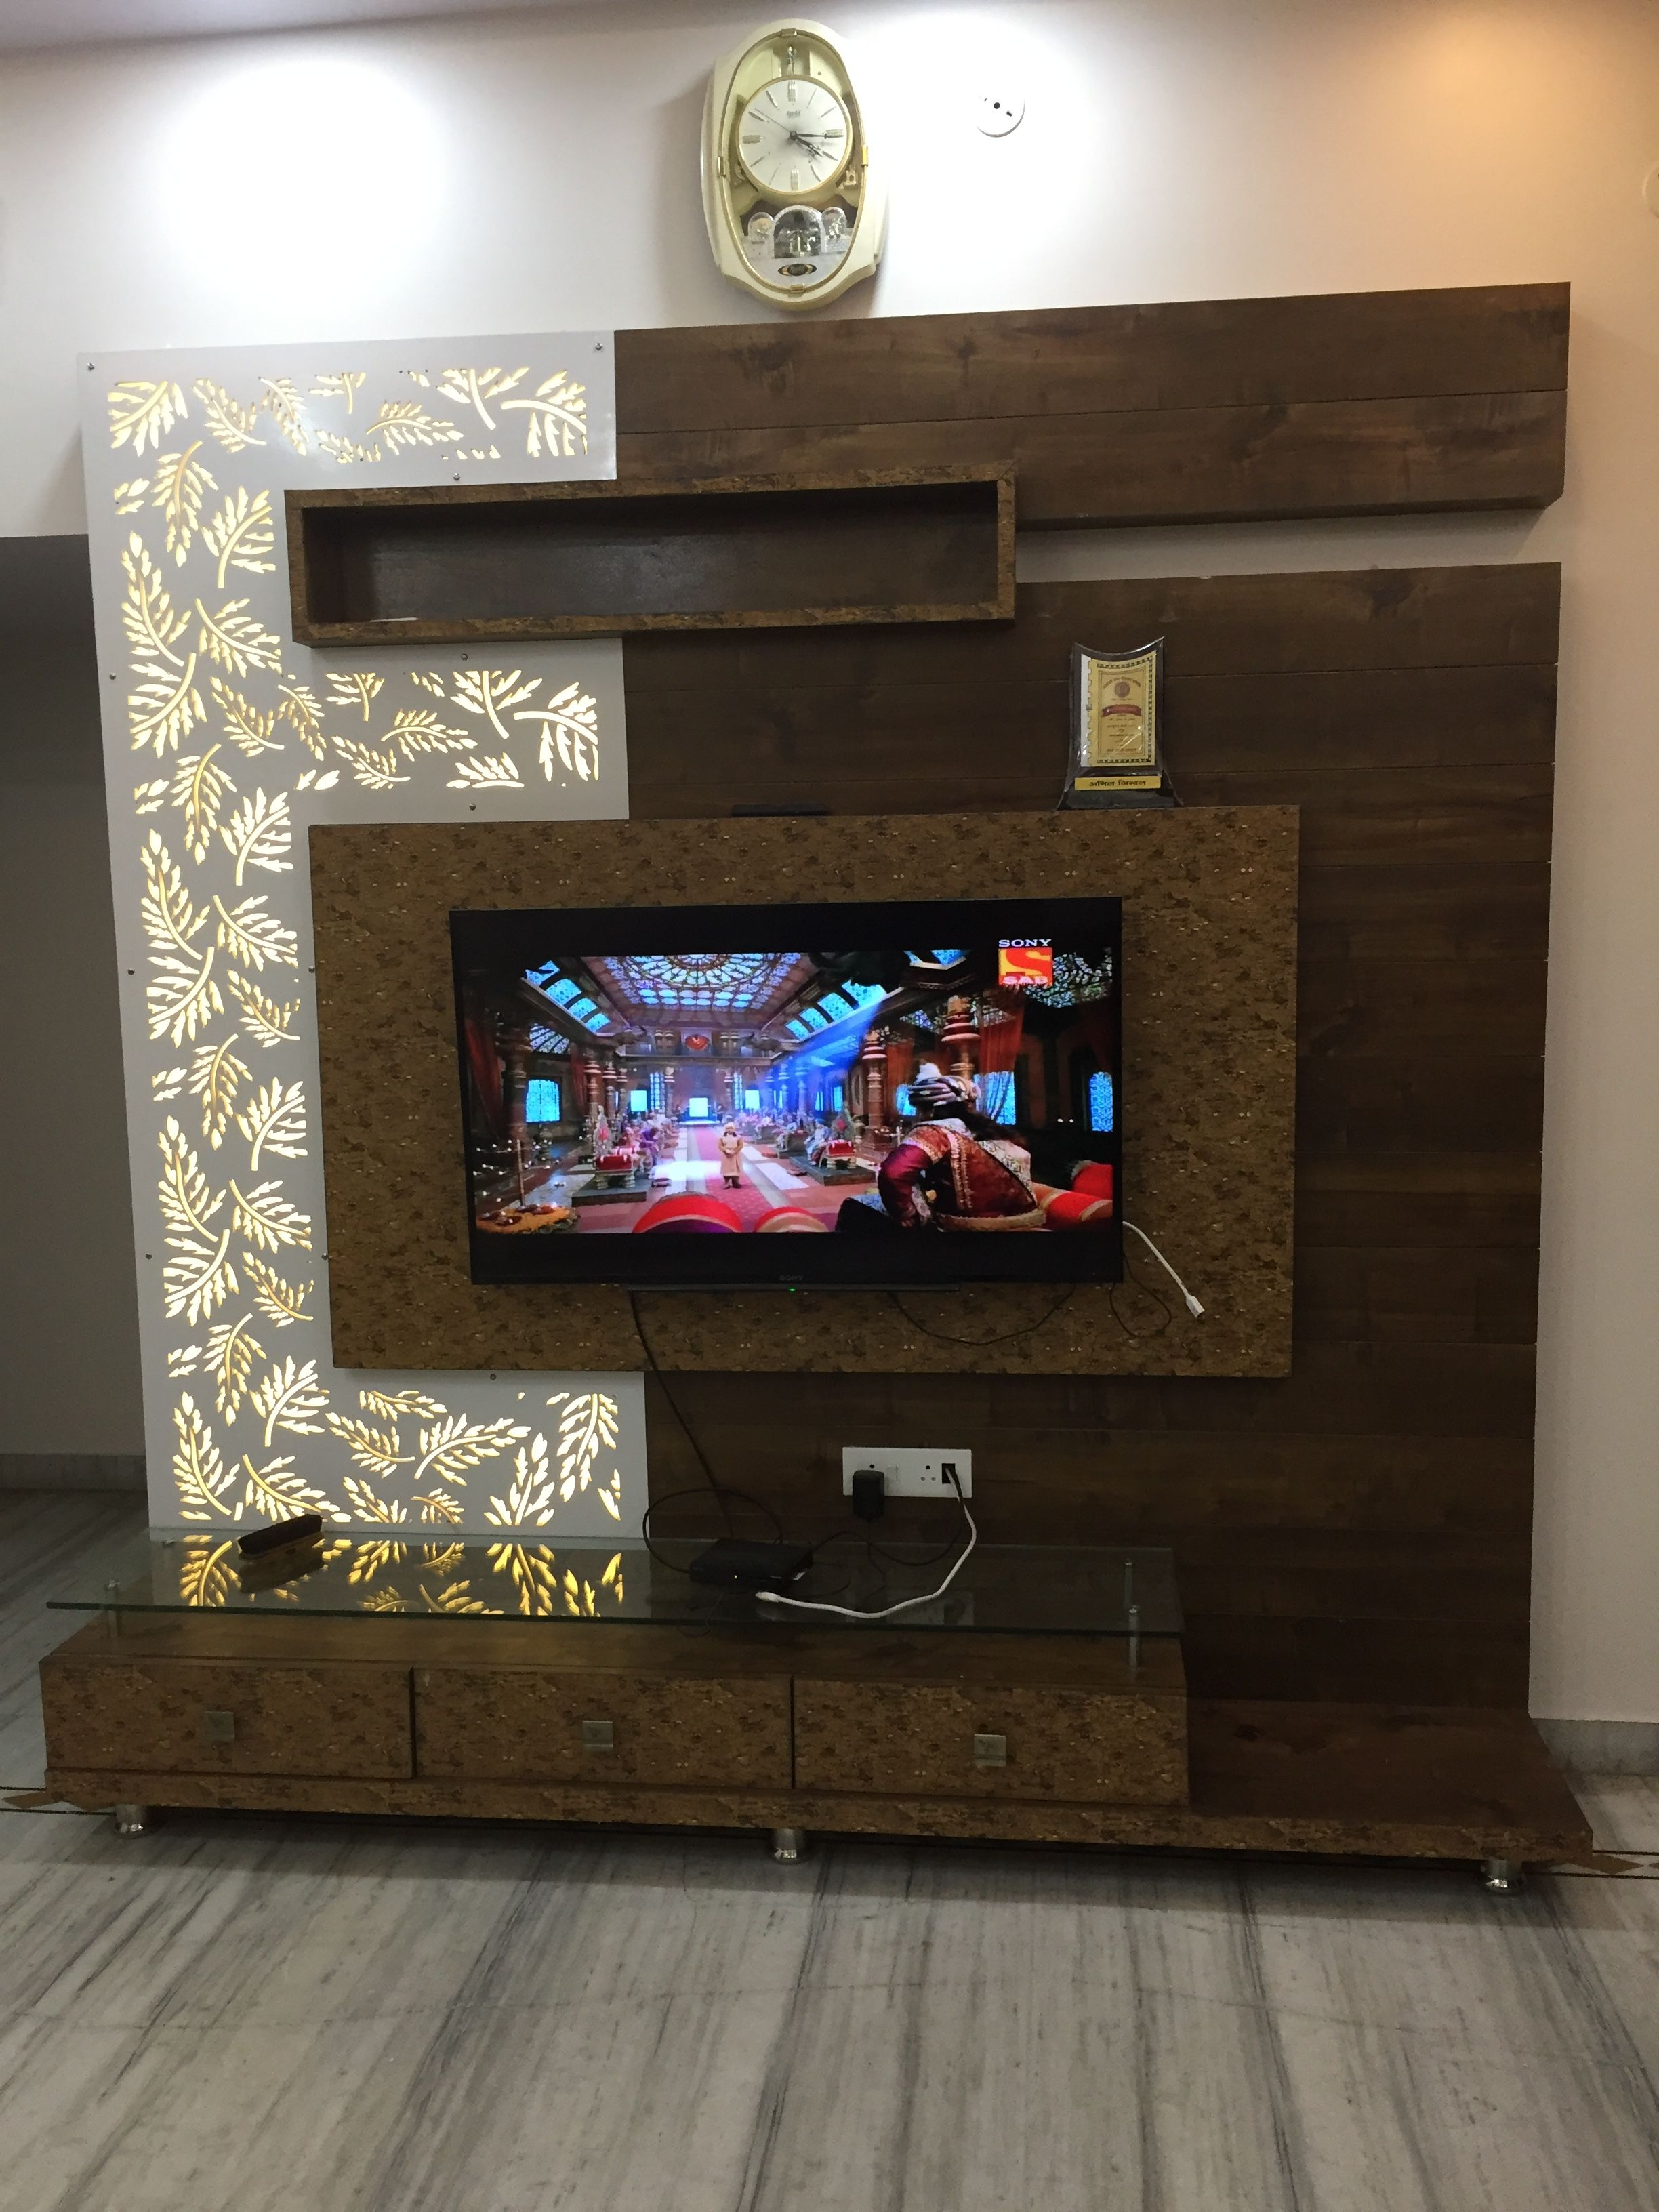 Modern Tv Units For Living Room Mirrored Furniture Pin By Lkknjhi On New Bed Pinterest Wall Lcd Design False Ceiling Unit Designs